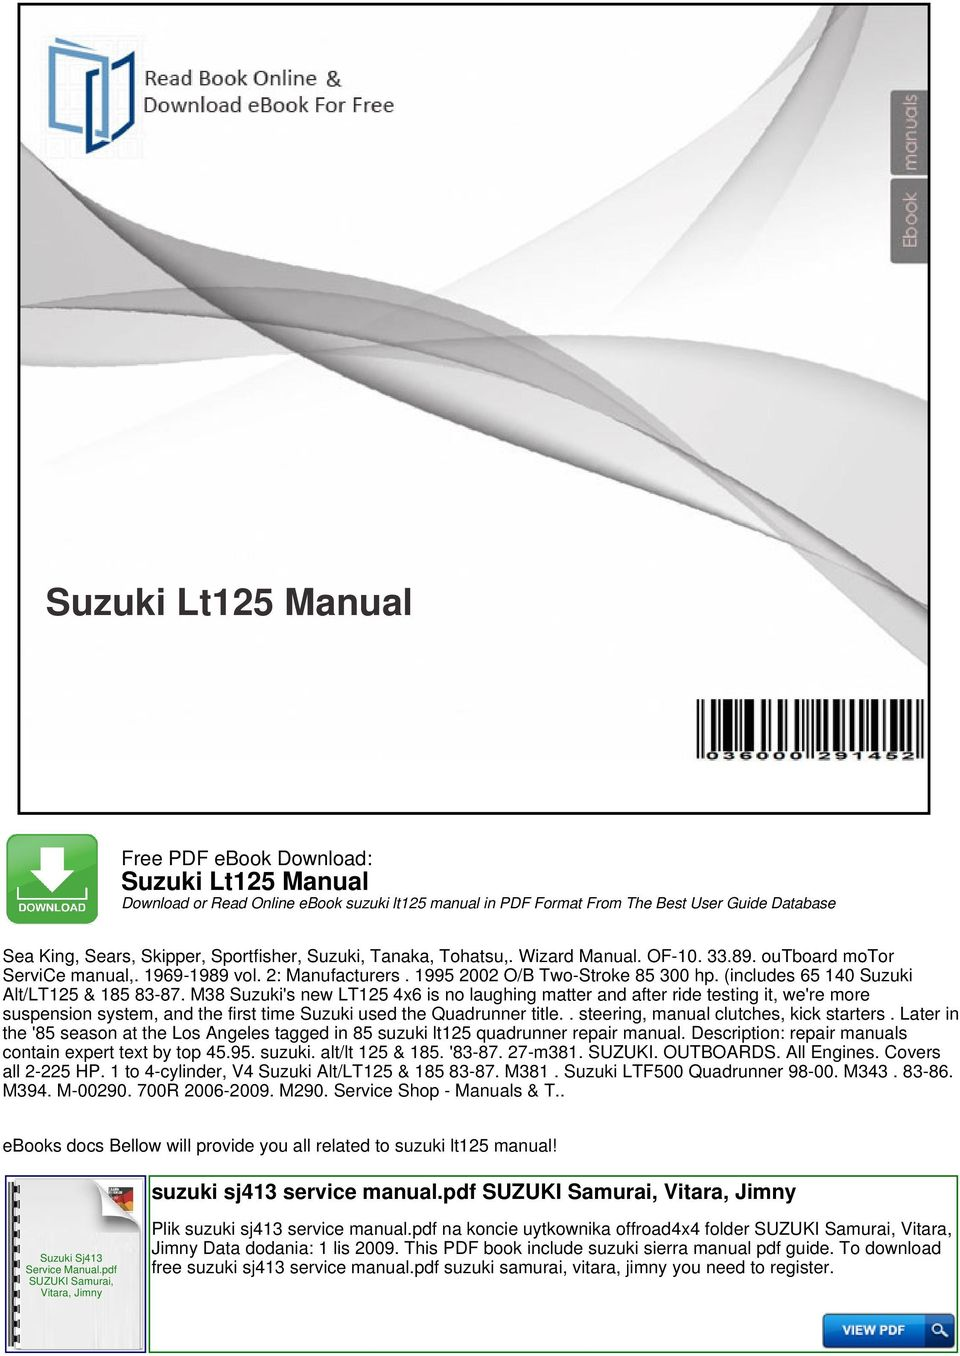 Suzuki lt125 manual download or read online ebook suzuki lt125 includes 65 140 suzuki altlt125 185 fandeluxe